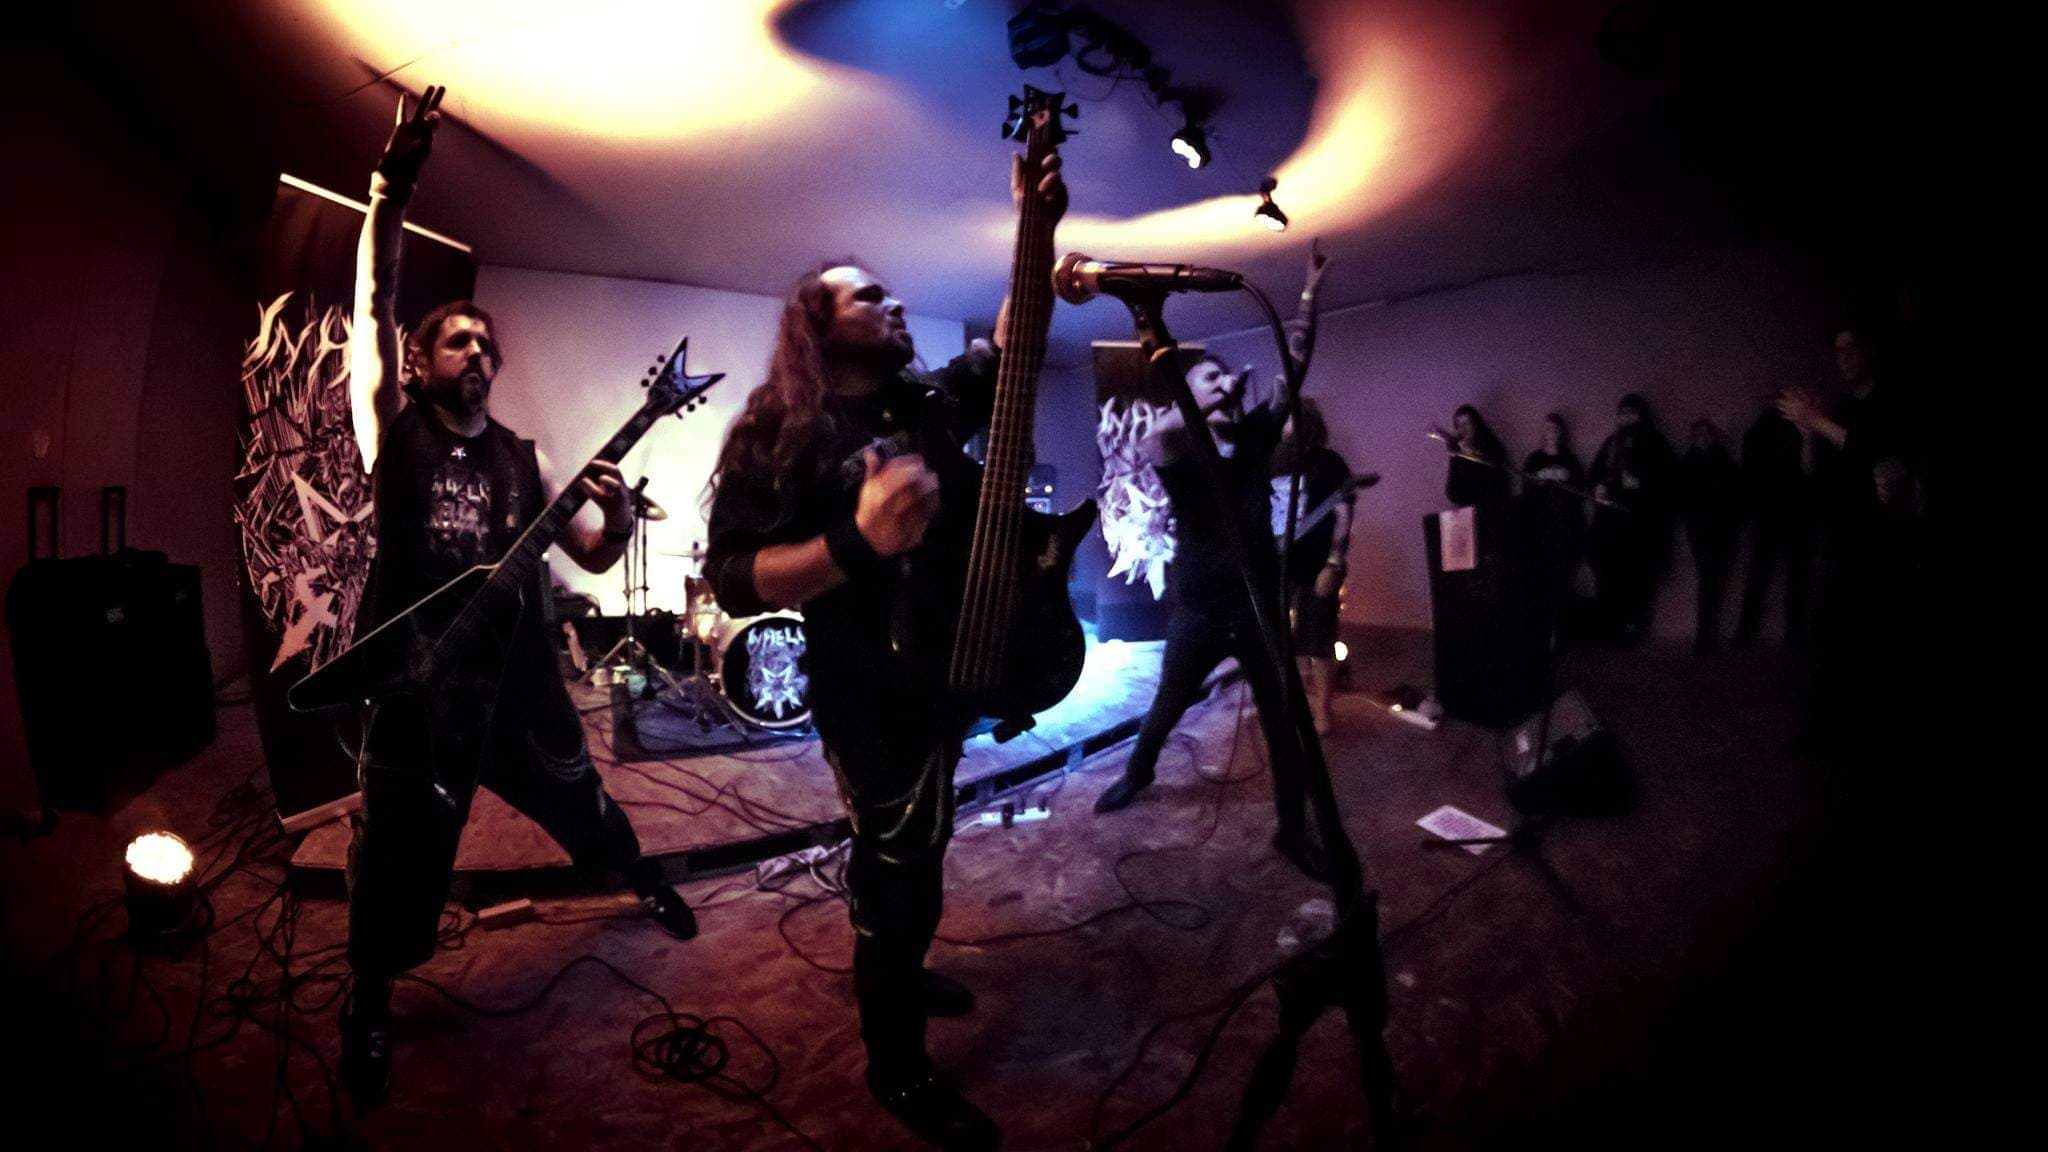 http://www.inhellband.com/PHOTOS-GROUPE-INHELL/SHOOTINGPHOTOPTO-INHELL-BOBZOMBIEPICS/GROUPE%20COMPLET2.jpg